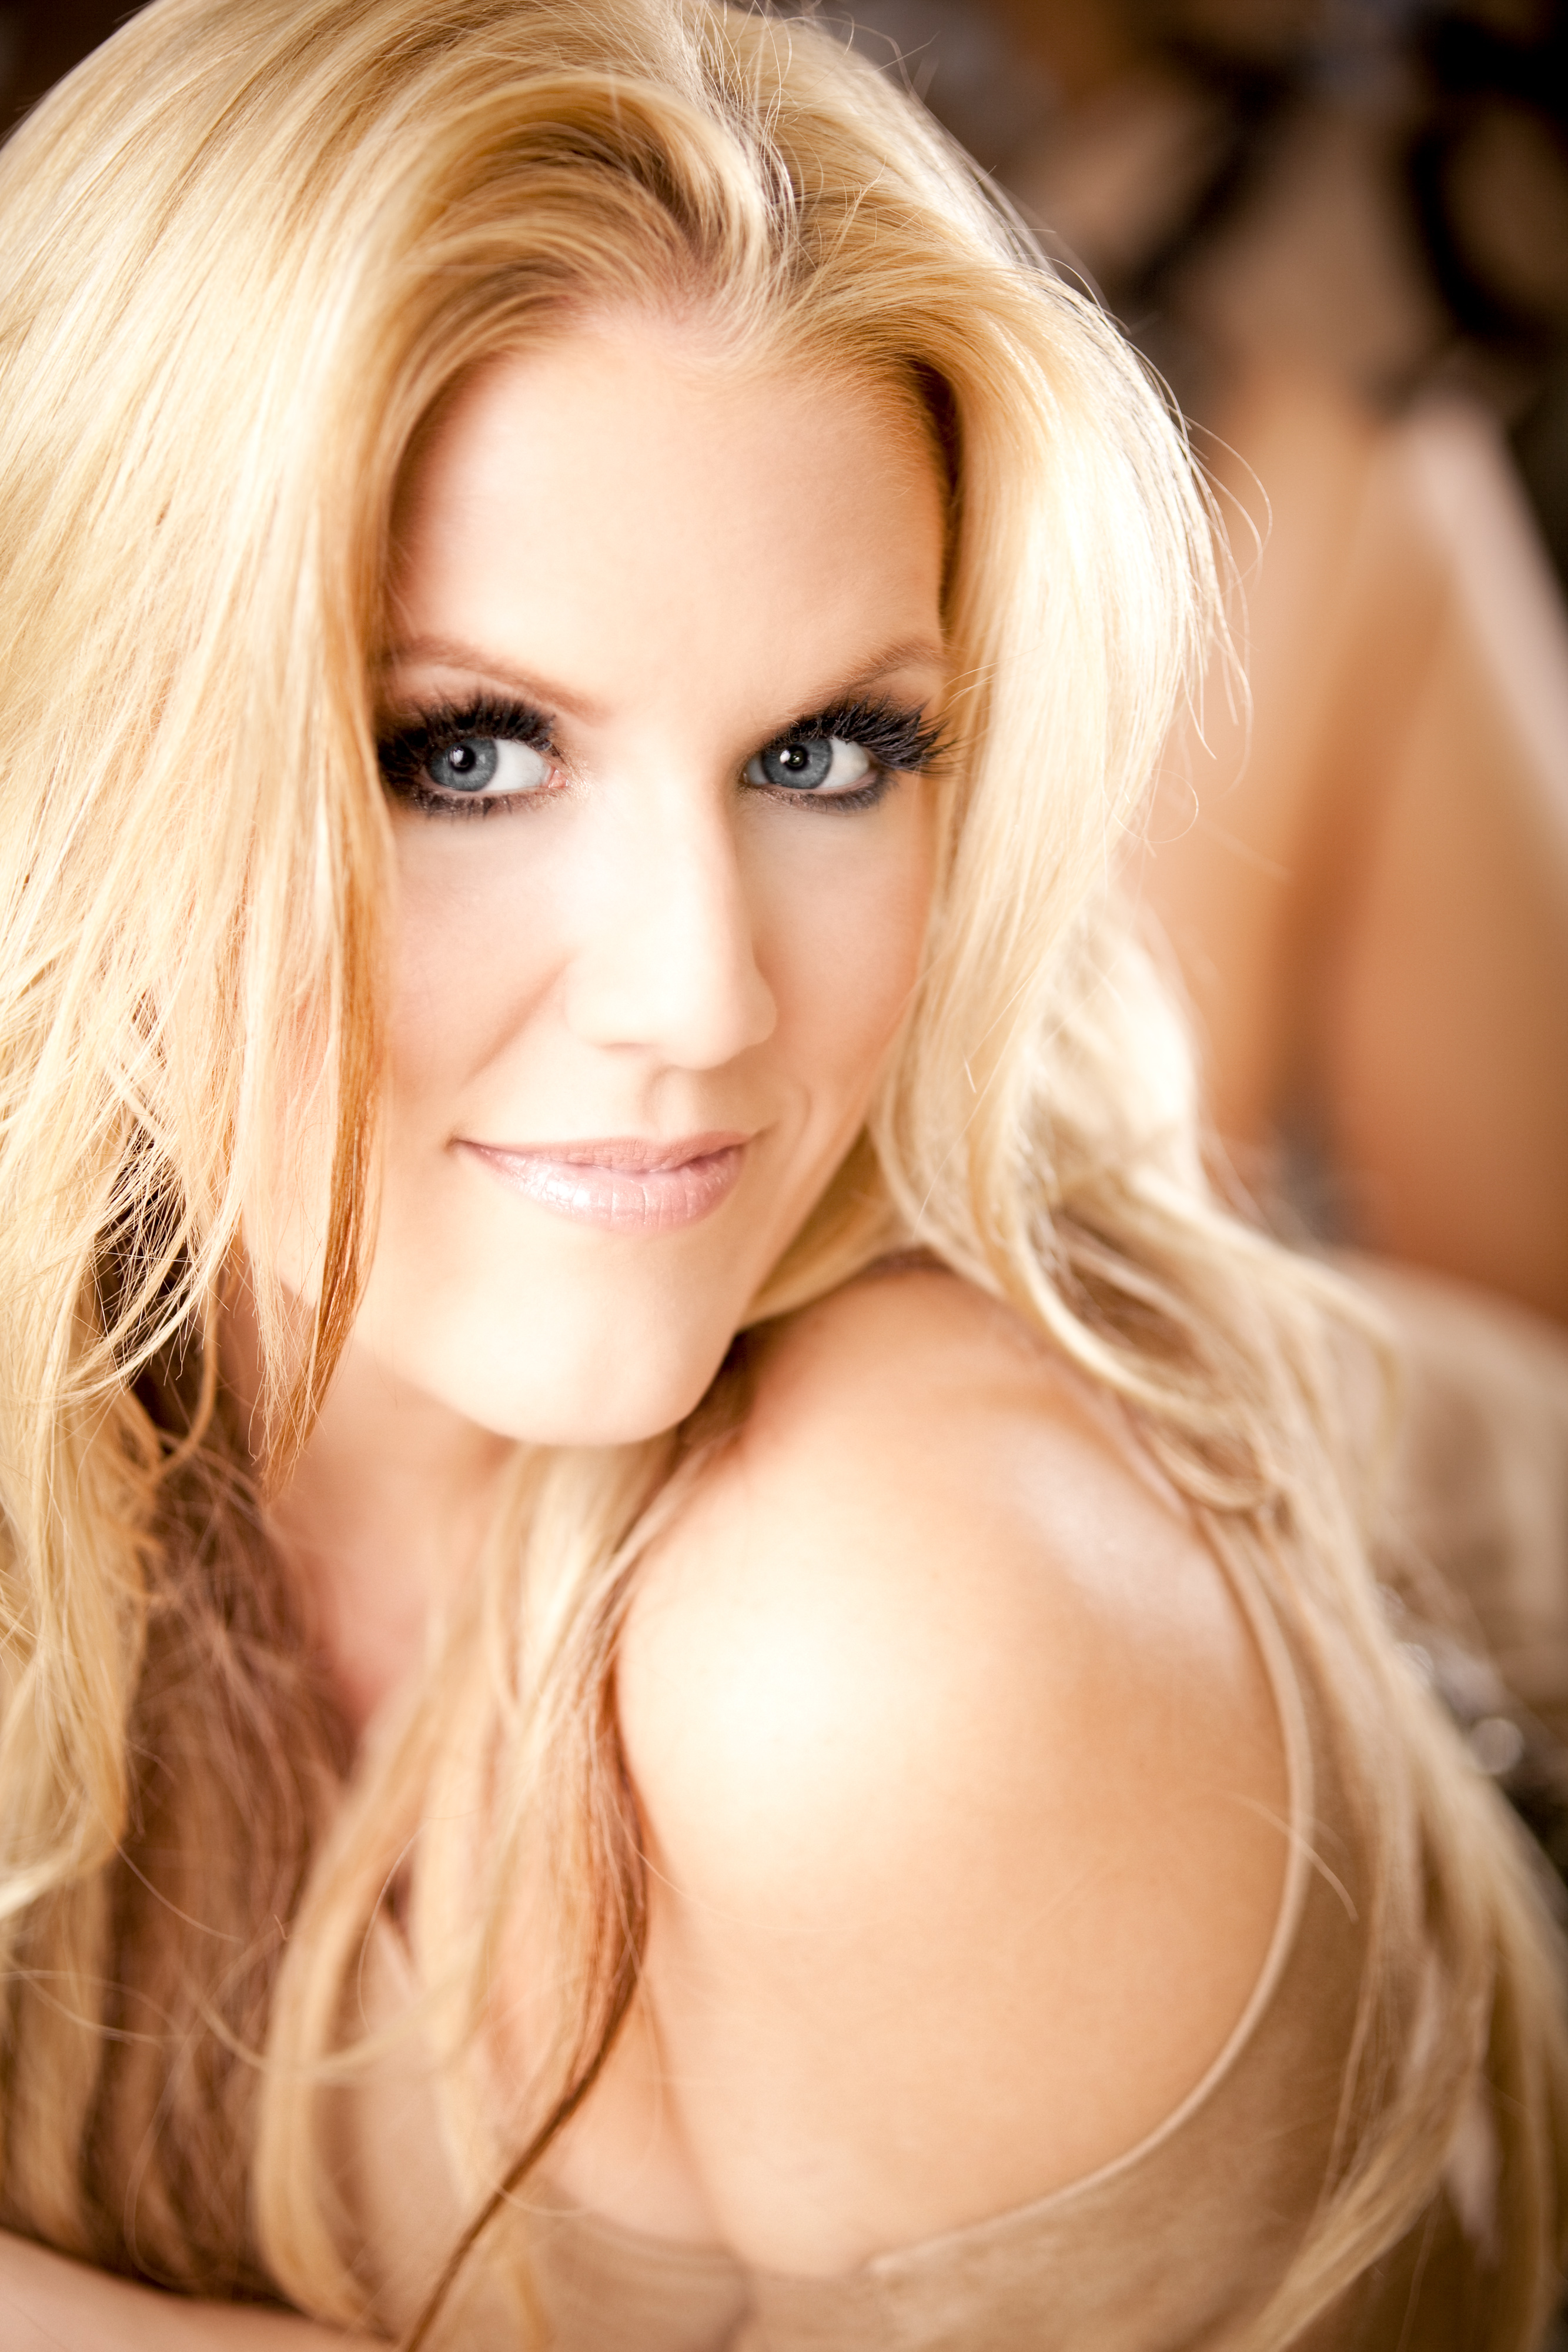 The 36-year old daughter of father David Horler and mother(?) Cascada in 2018 photo. Cascada earned a  million dollar salary - leaving the net worth at  million in 2018